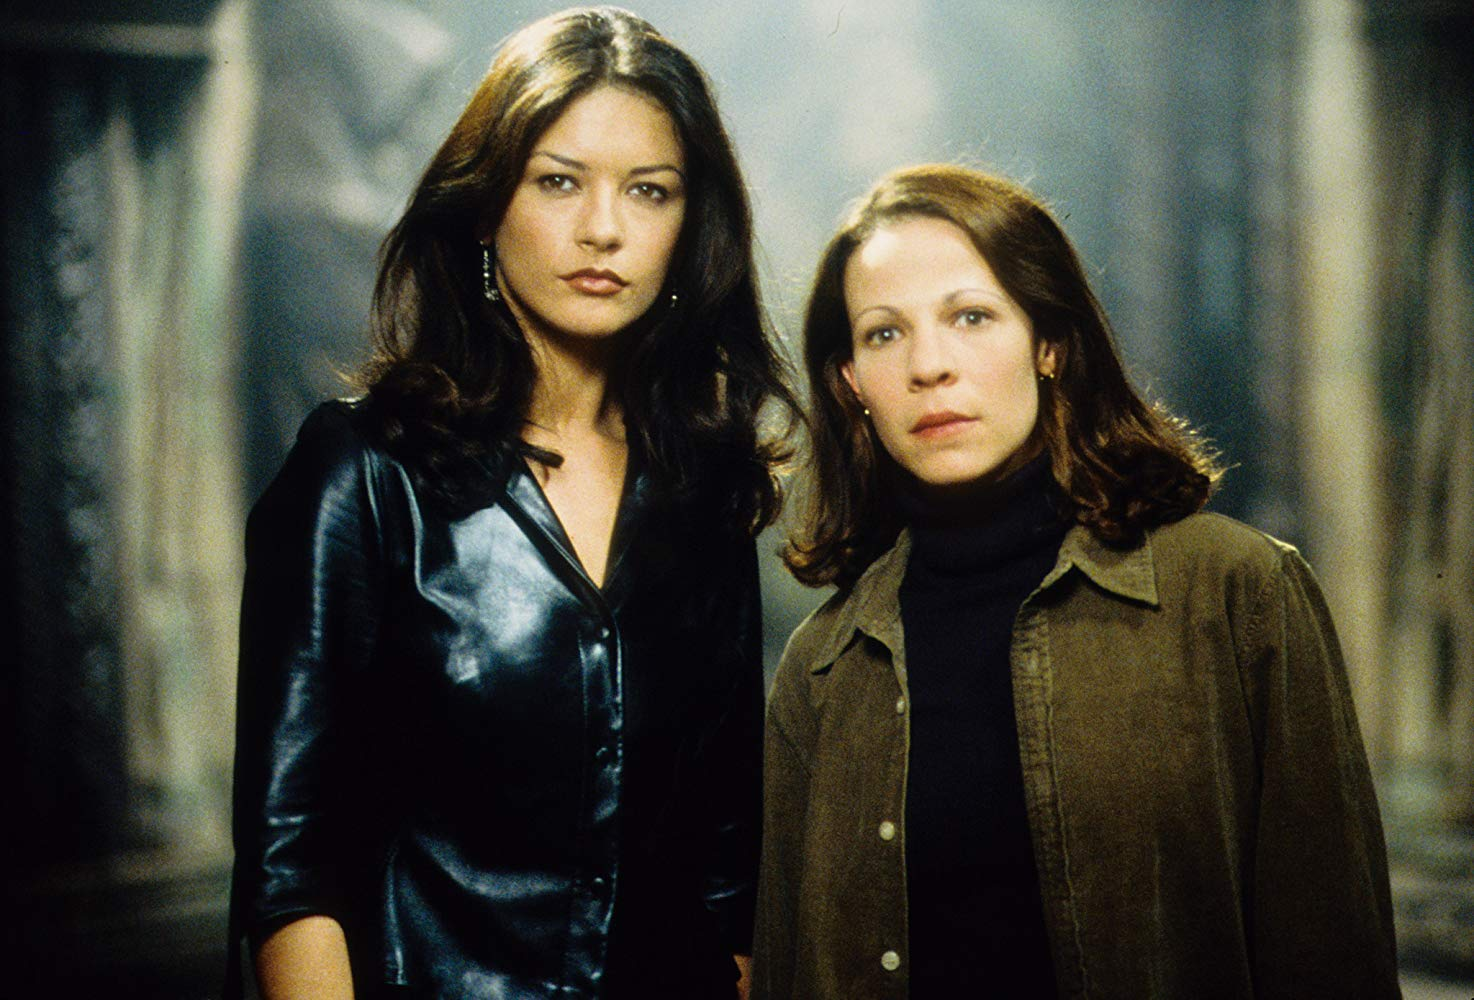 Theo (Catherina Zeta-Jones) and Eleanor (Lili Taylor) in The Haunting (1999)